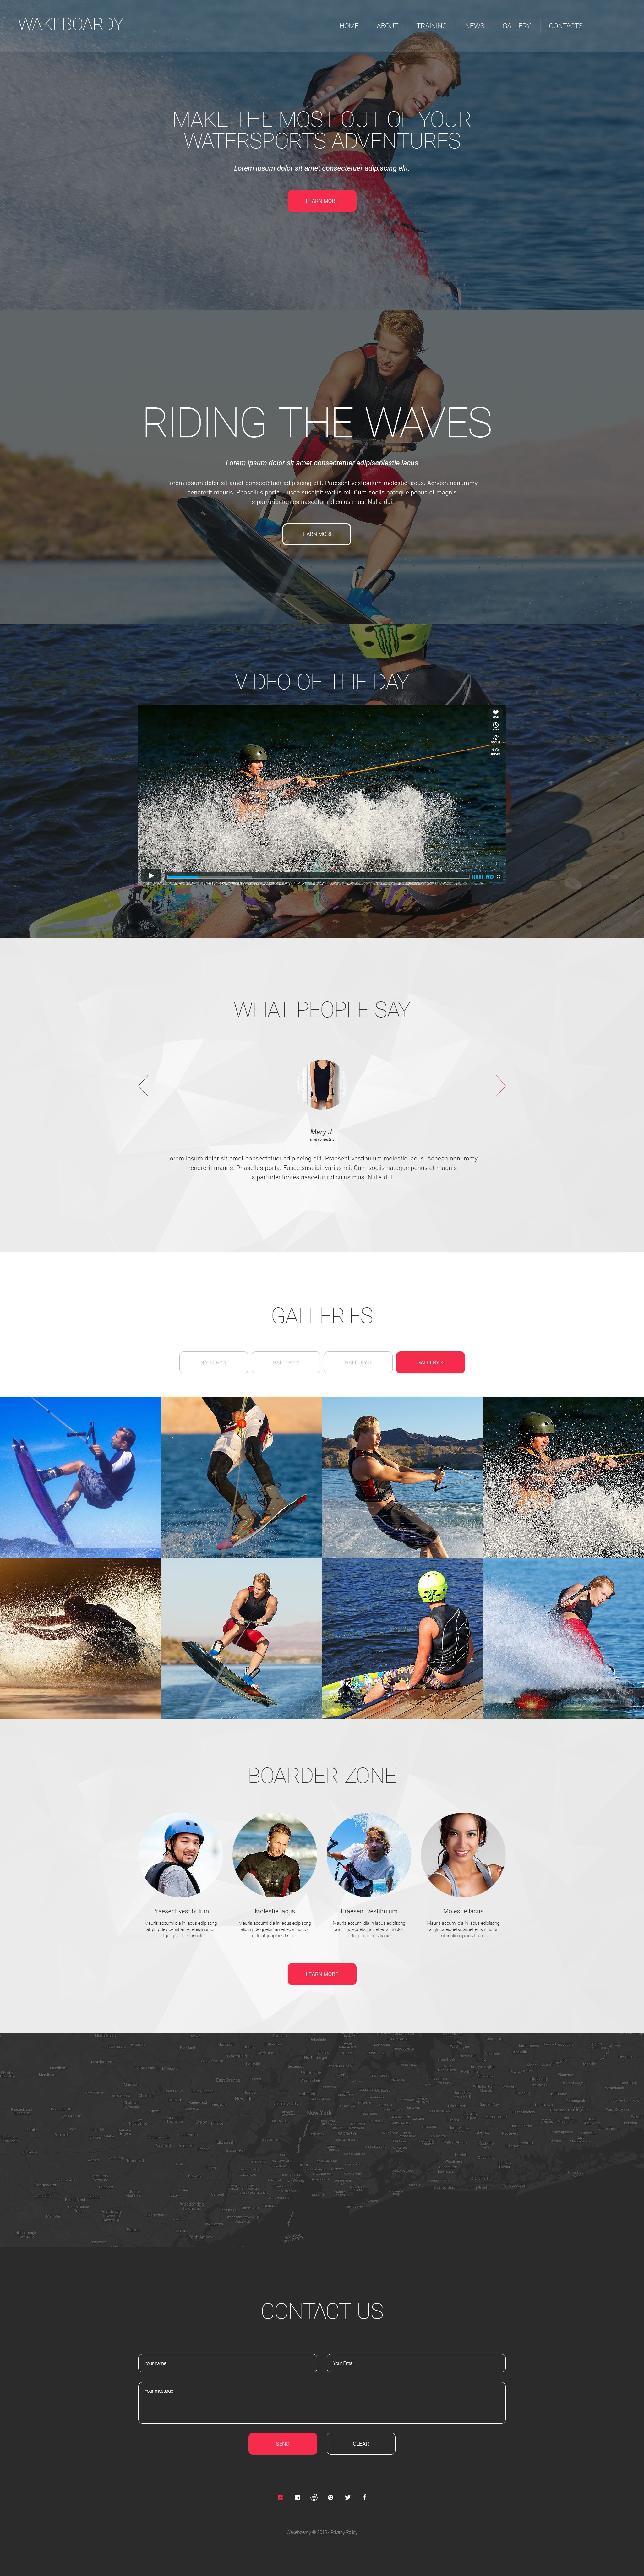 Wakeboardy №55105